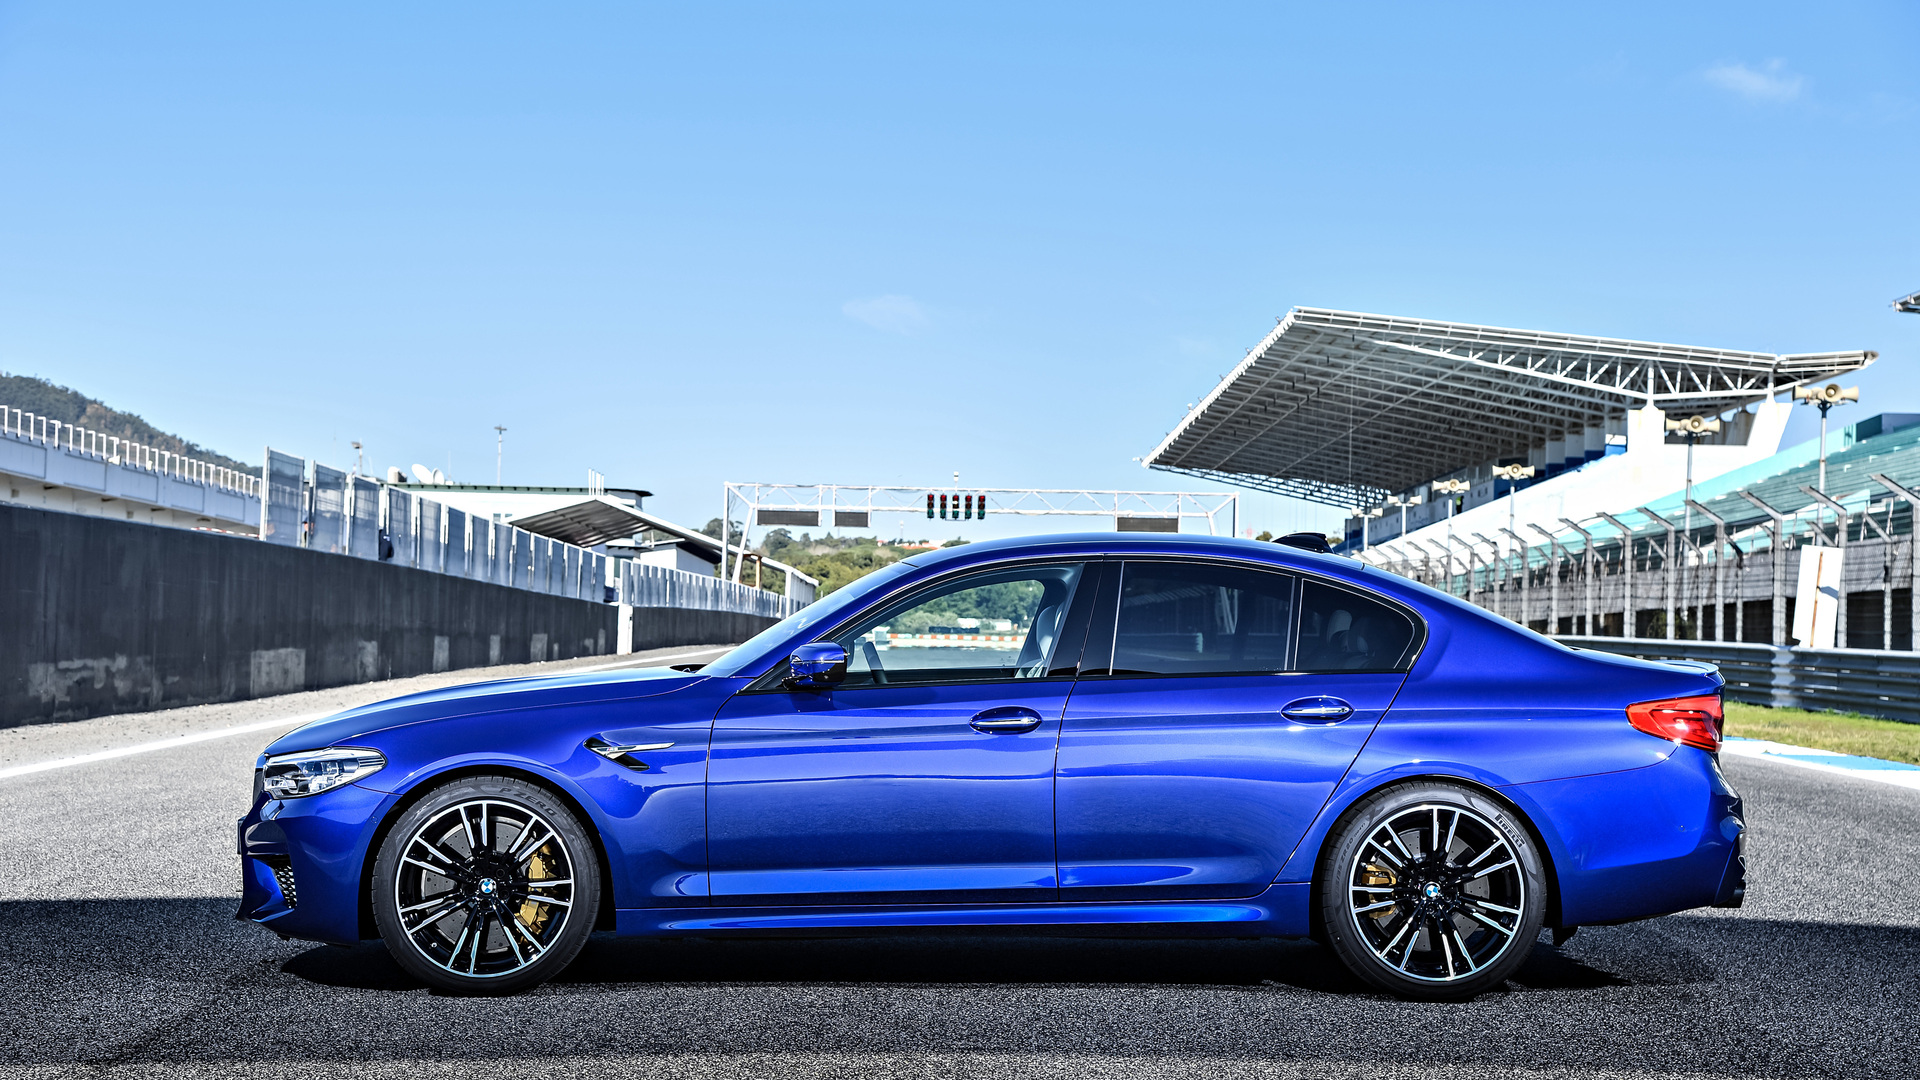 1920x1080 Bmw M5 2018 Laptop Full Hd 1080p Hd 4k Wallpapers Images Backgrounds Photos And Pictures